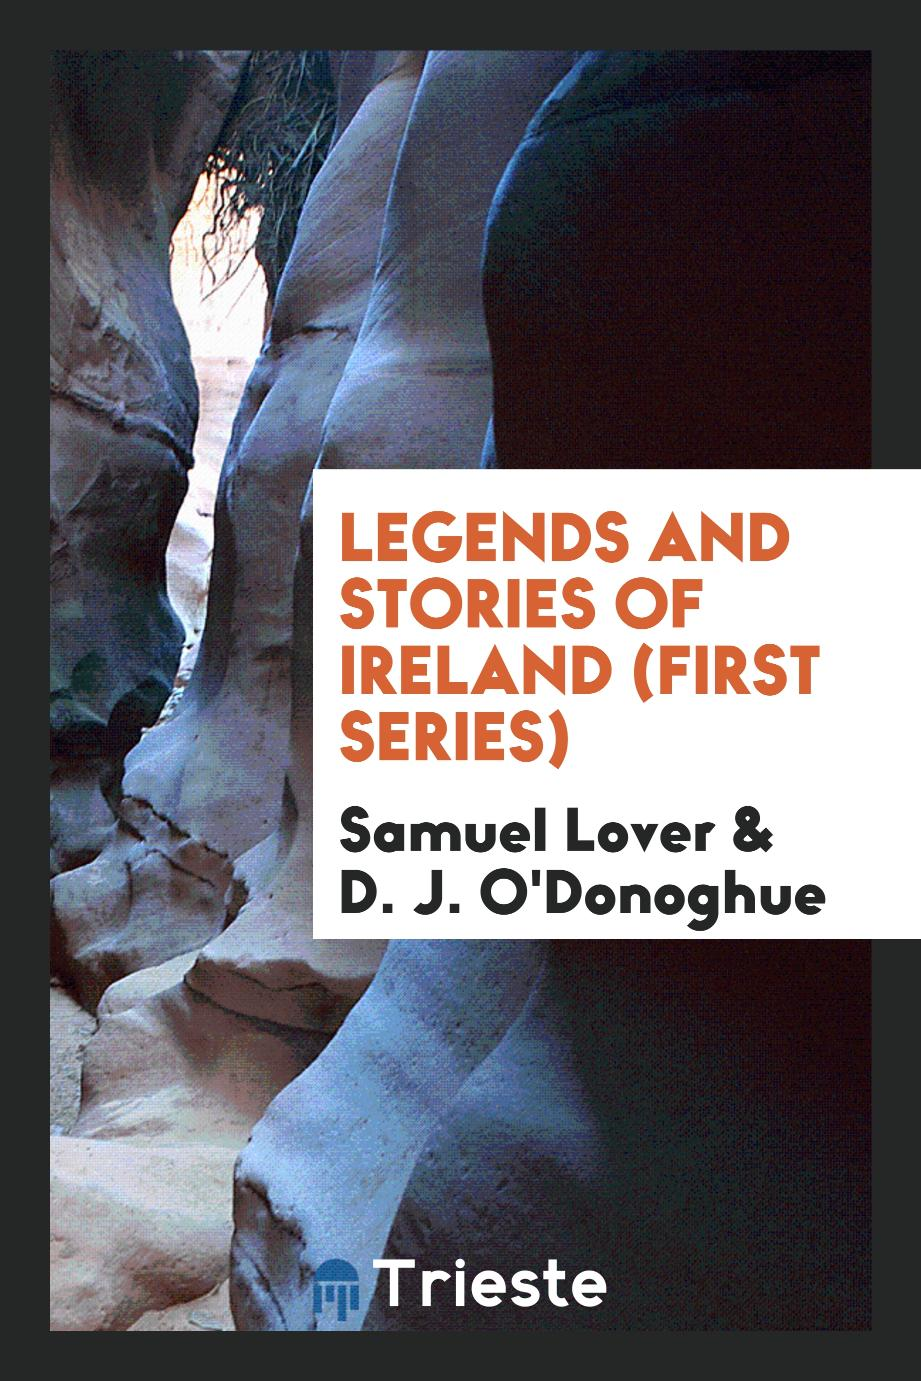 Legends and Stories of Ireland (First Series)